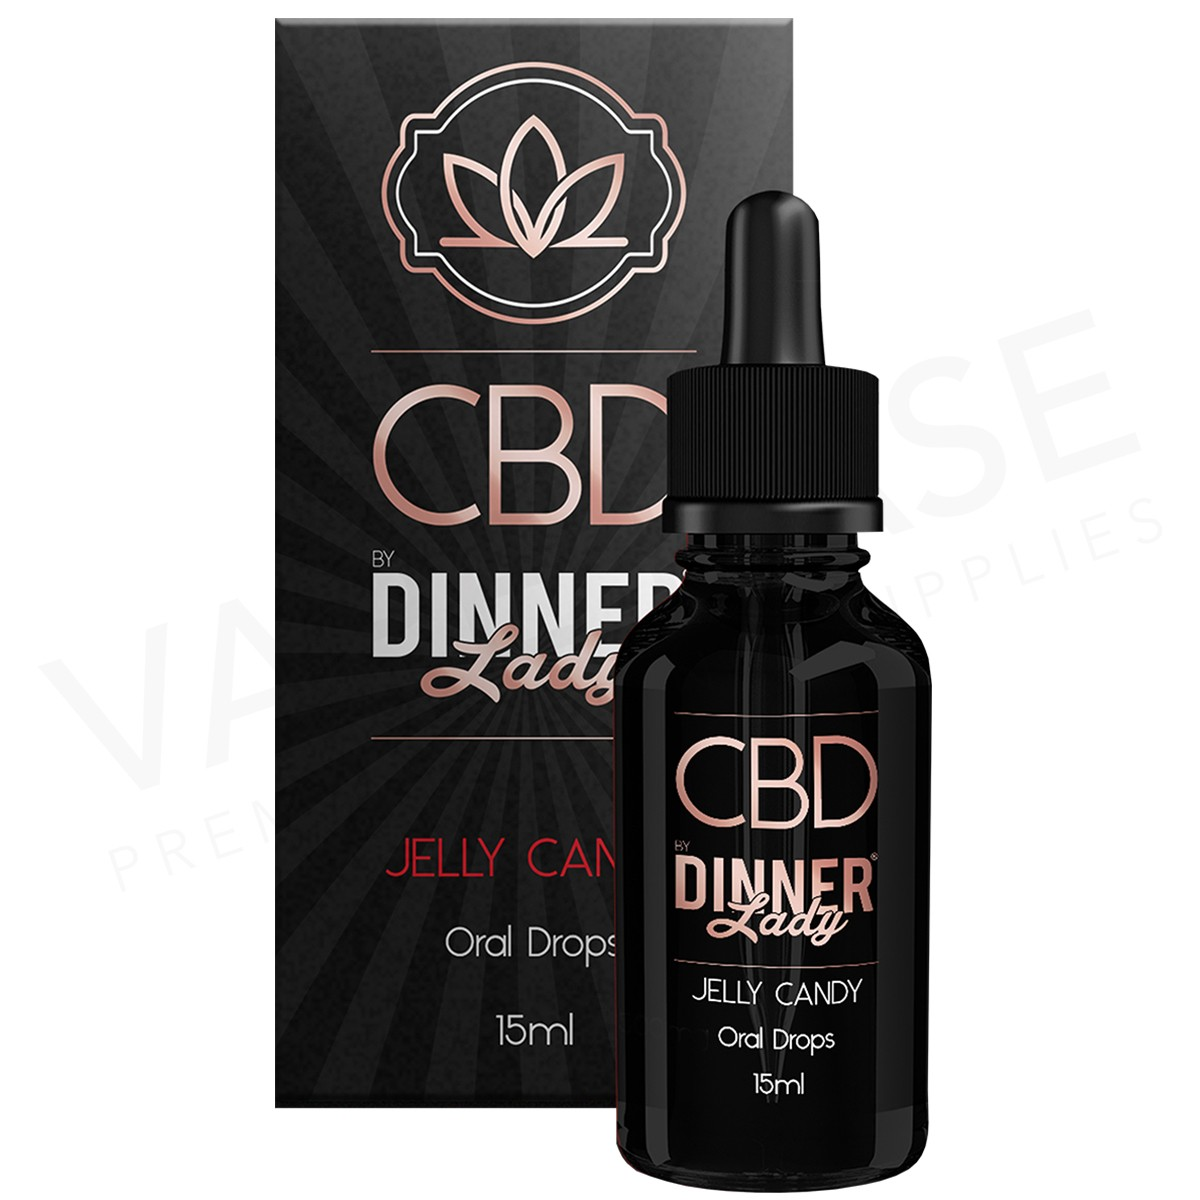 DINNER LADY - CBD DROPS JELLY CANDY (500mg)